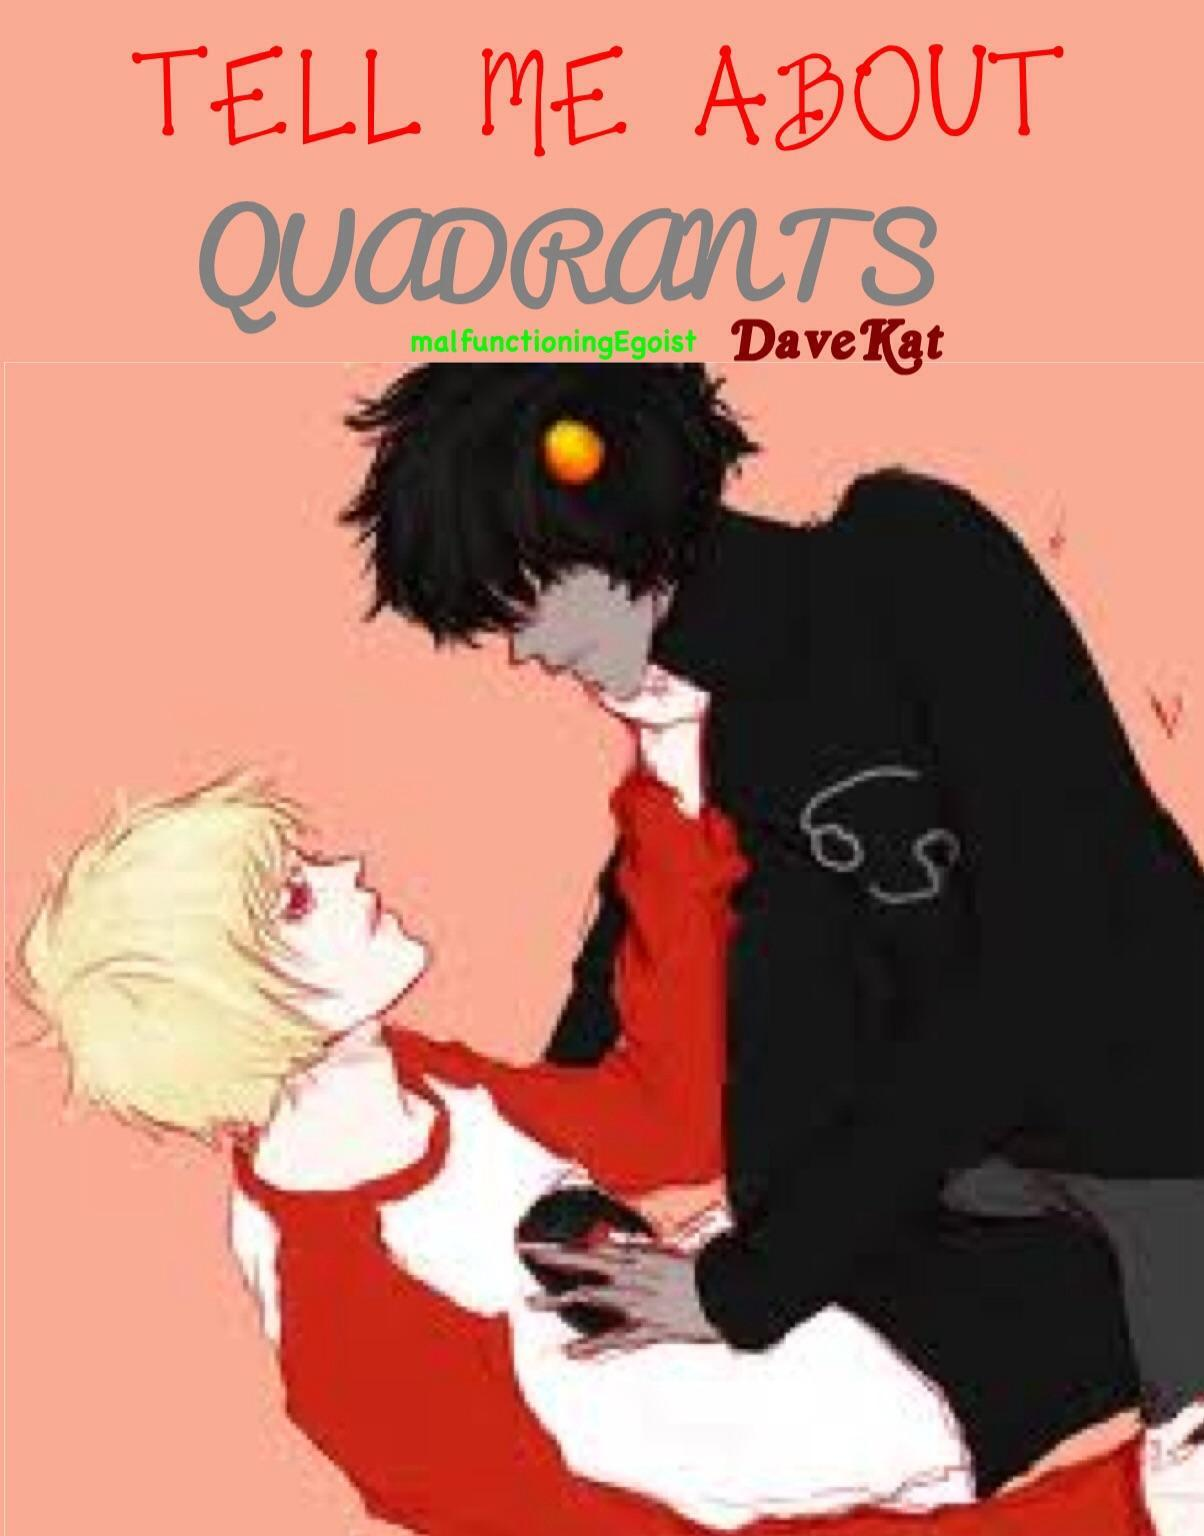 Tell me about Quadrants <Homestuck DaveKat Dave Strider Karkat Vantas>